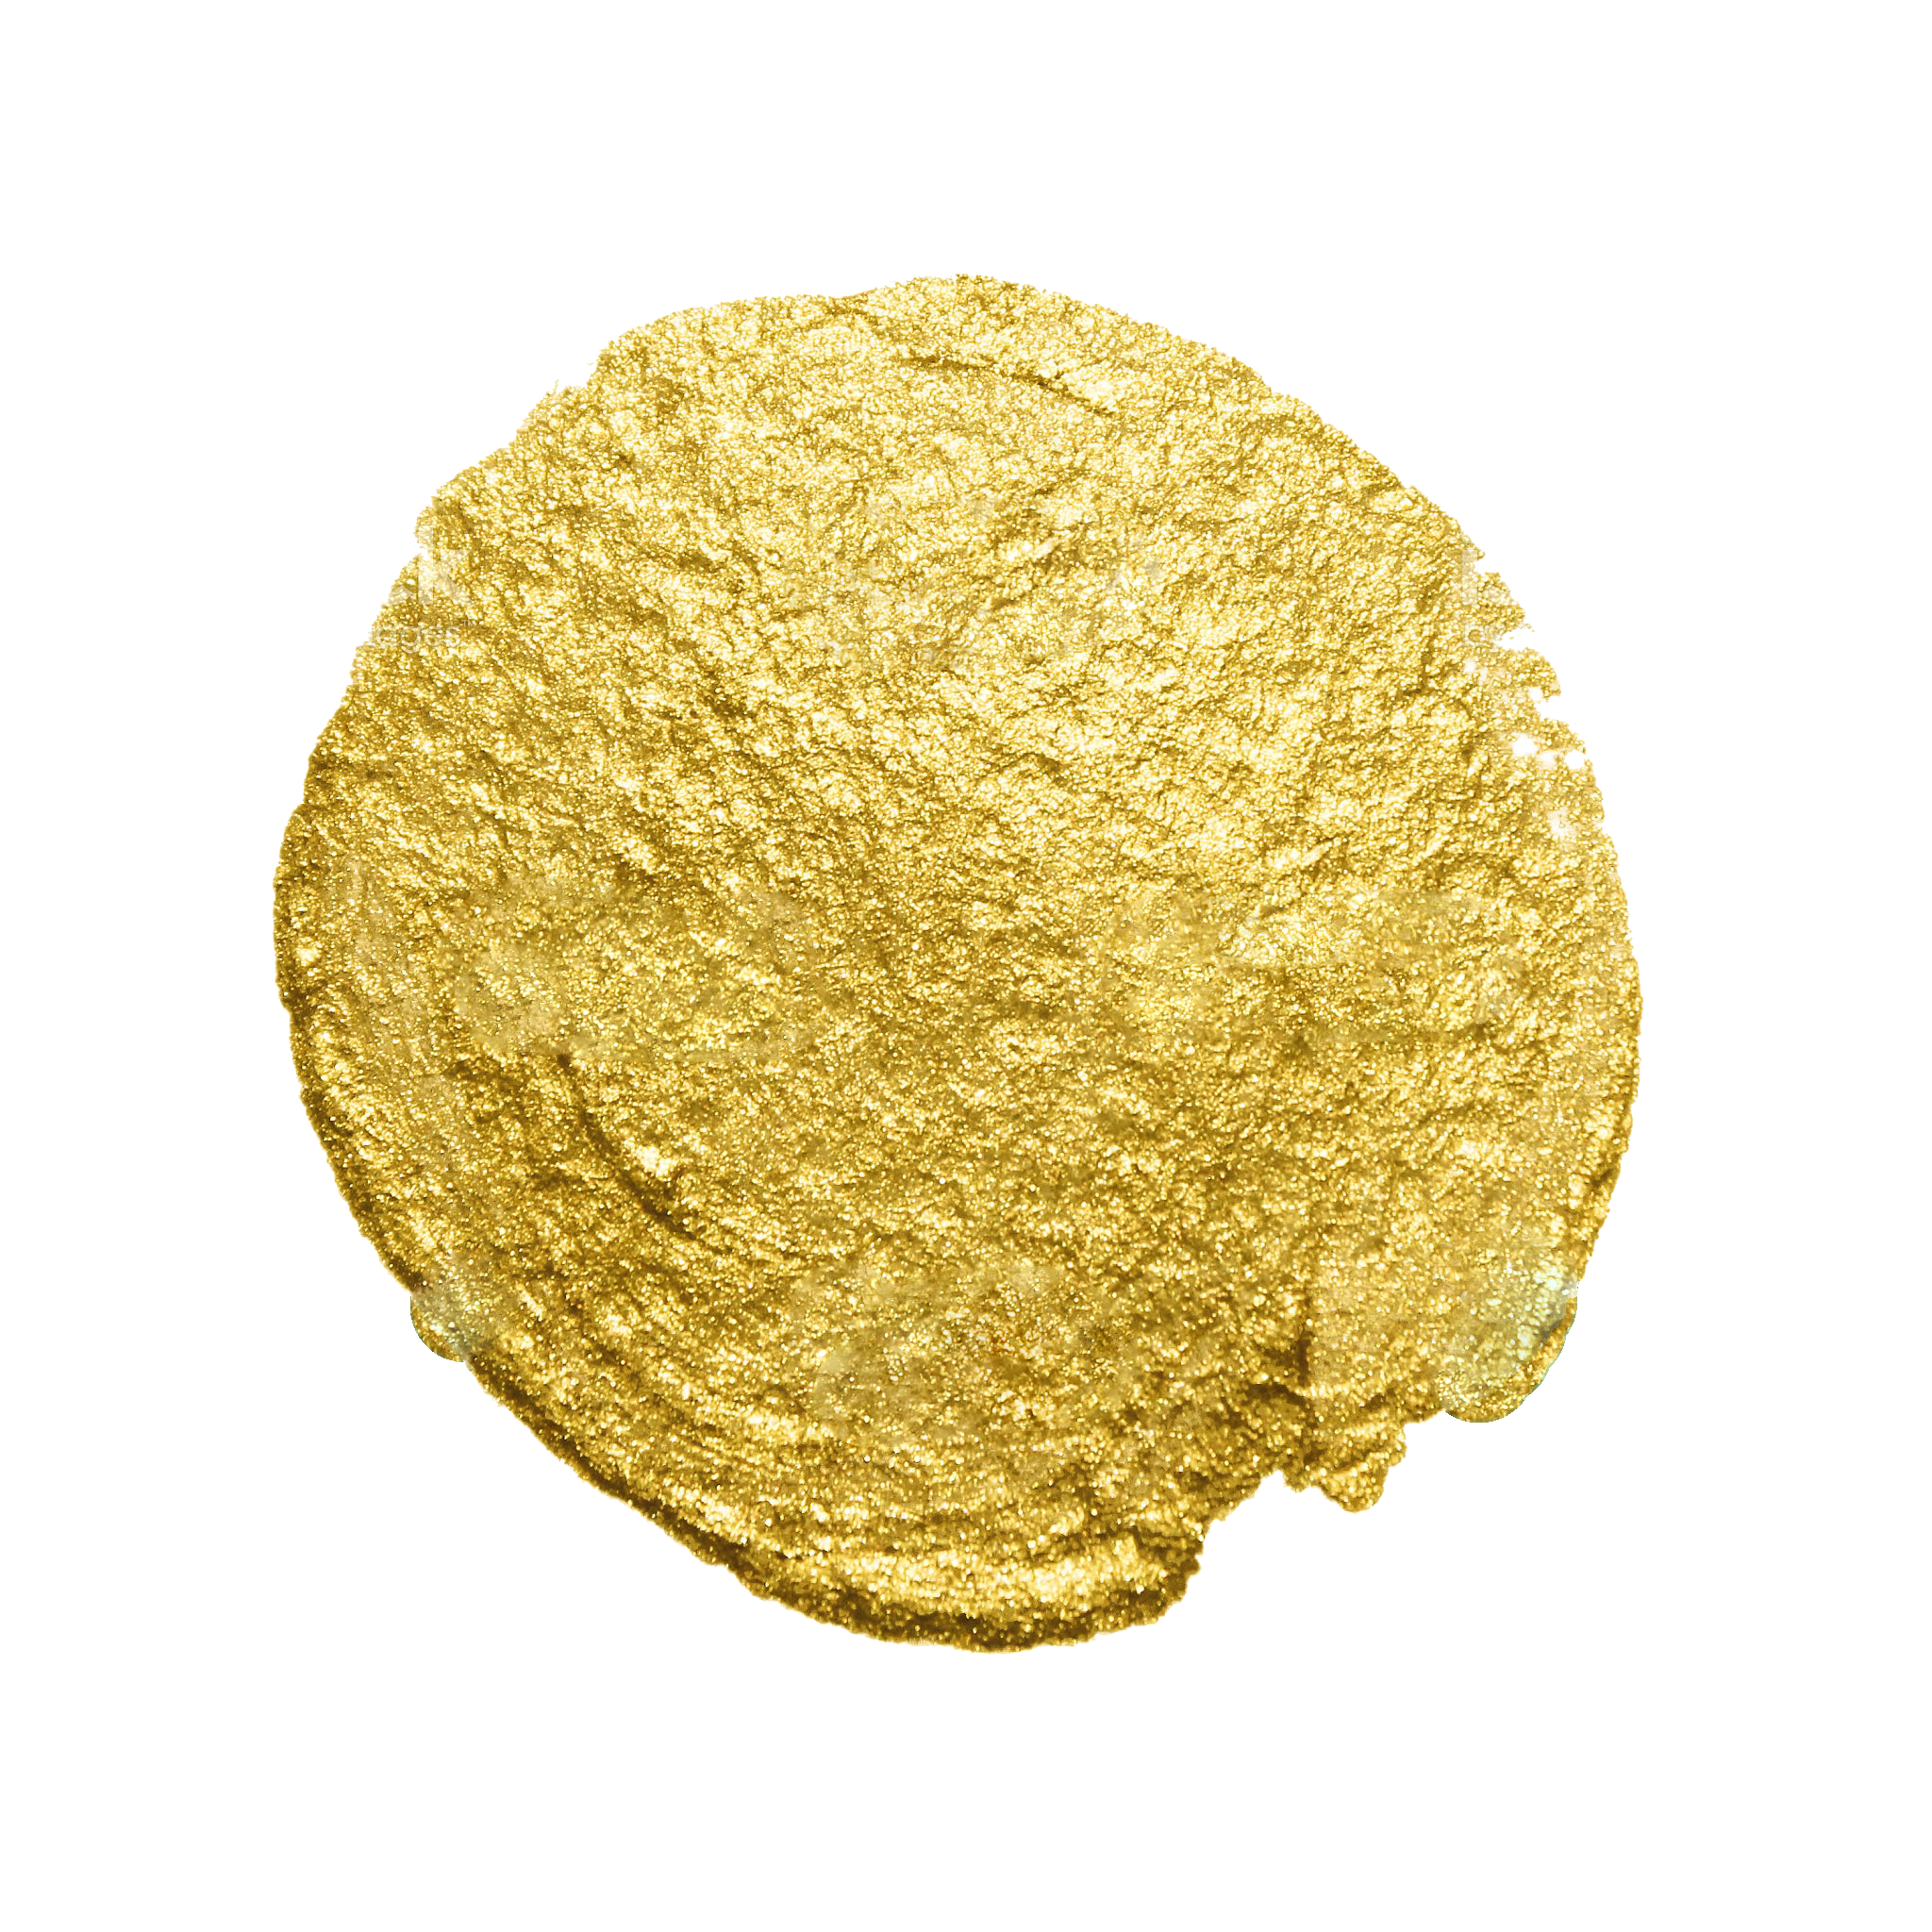 Gold background png. Free yellow watercolor backgrounds